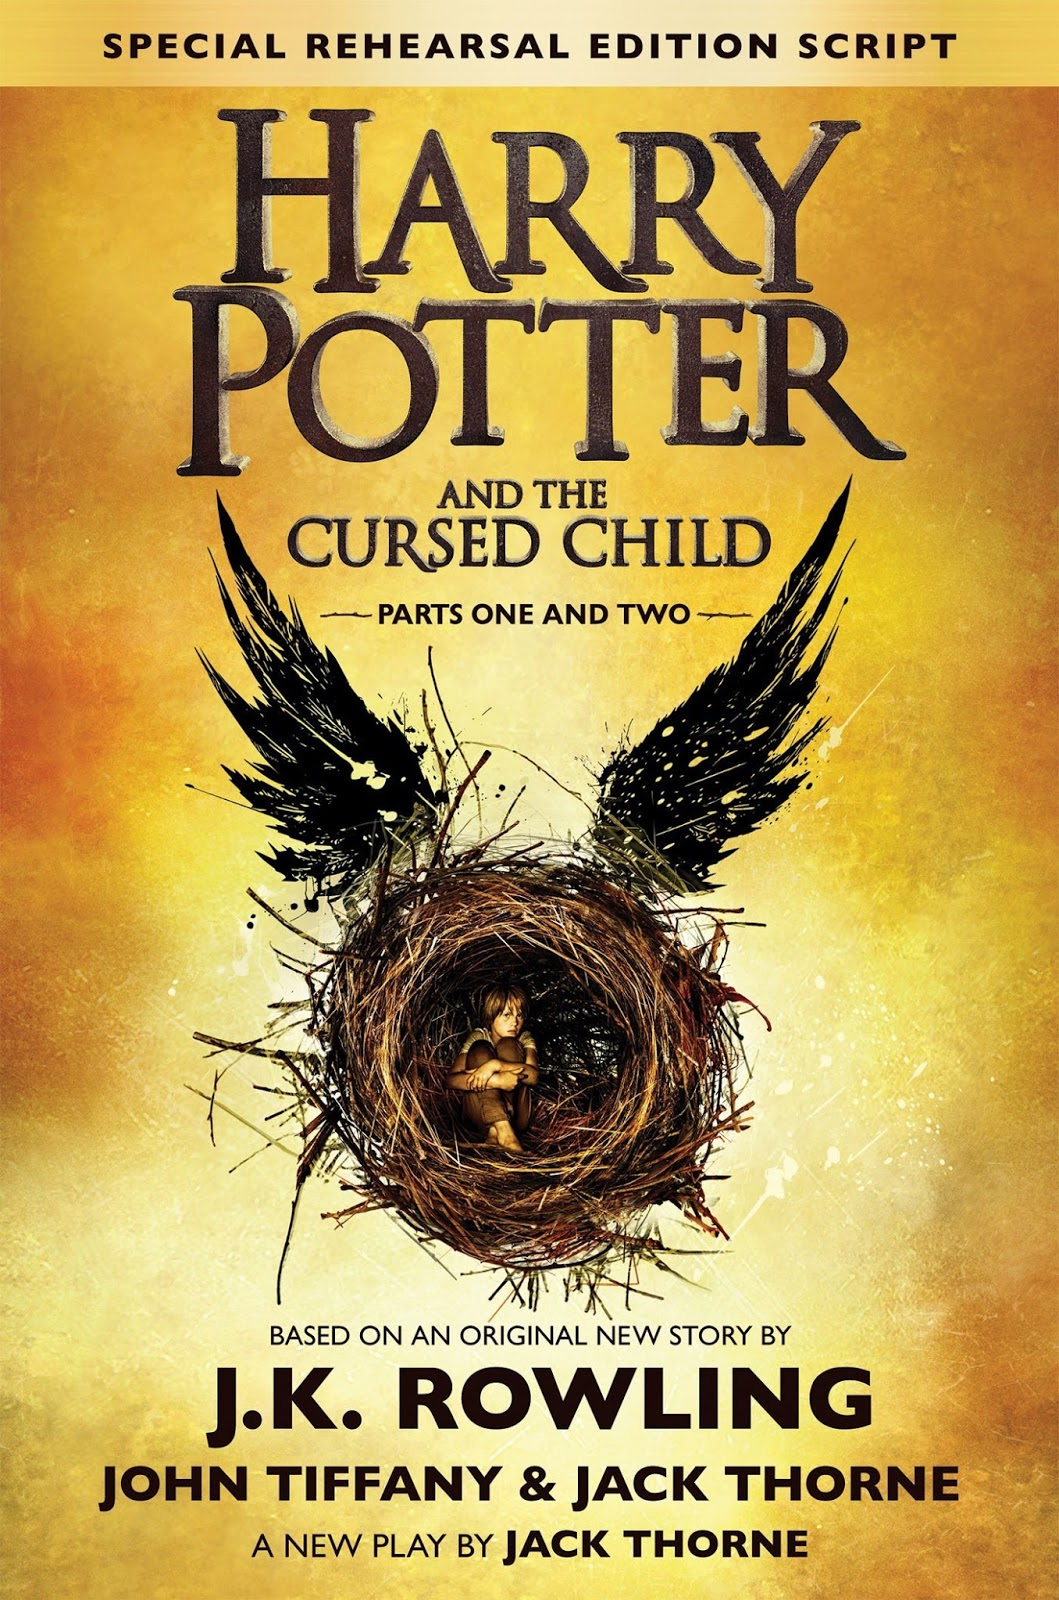 Harry Potter and the Cursed Child J.K. rowling cover